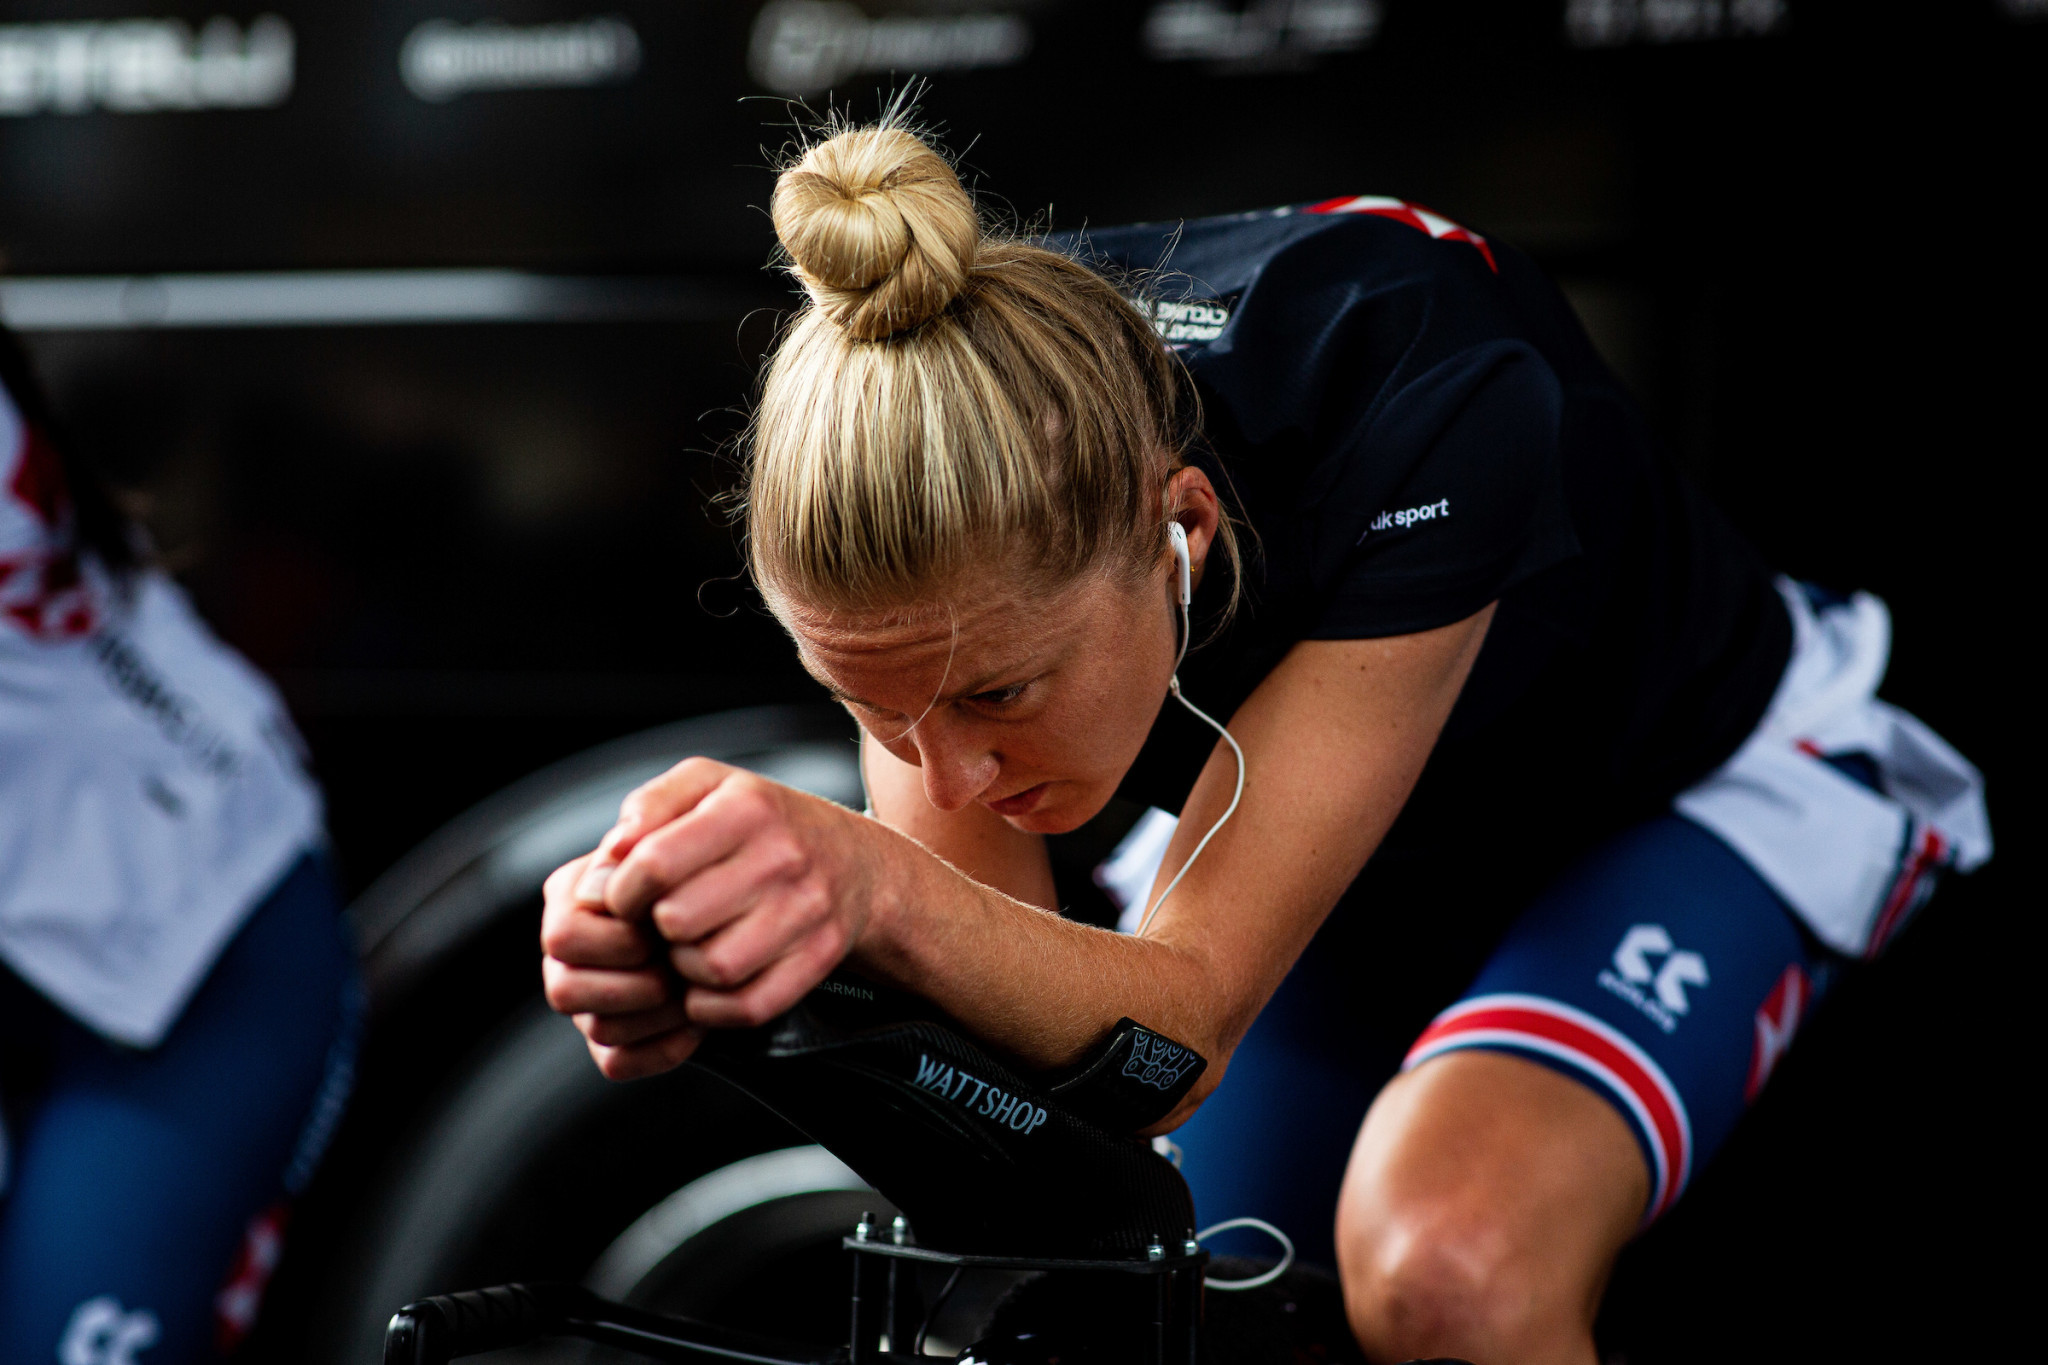 Lowden to attempt to break UCI Hour Record in Switzerland